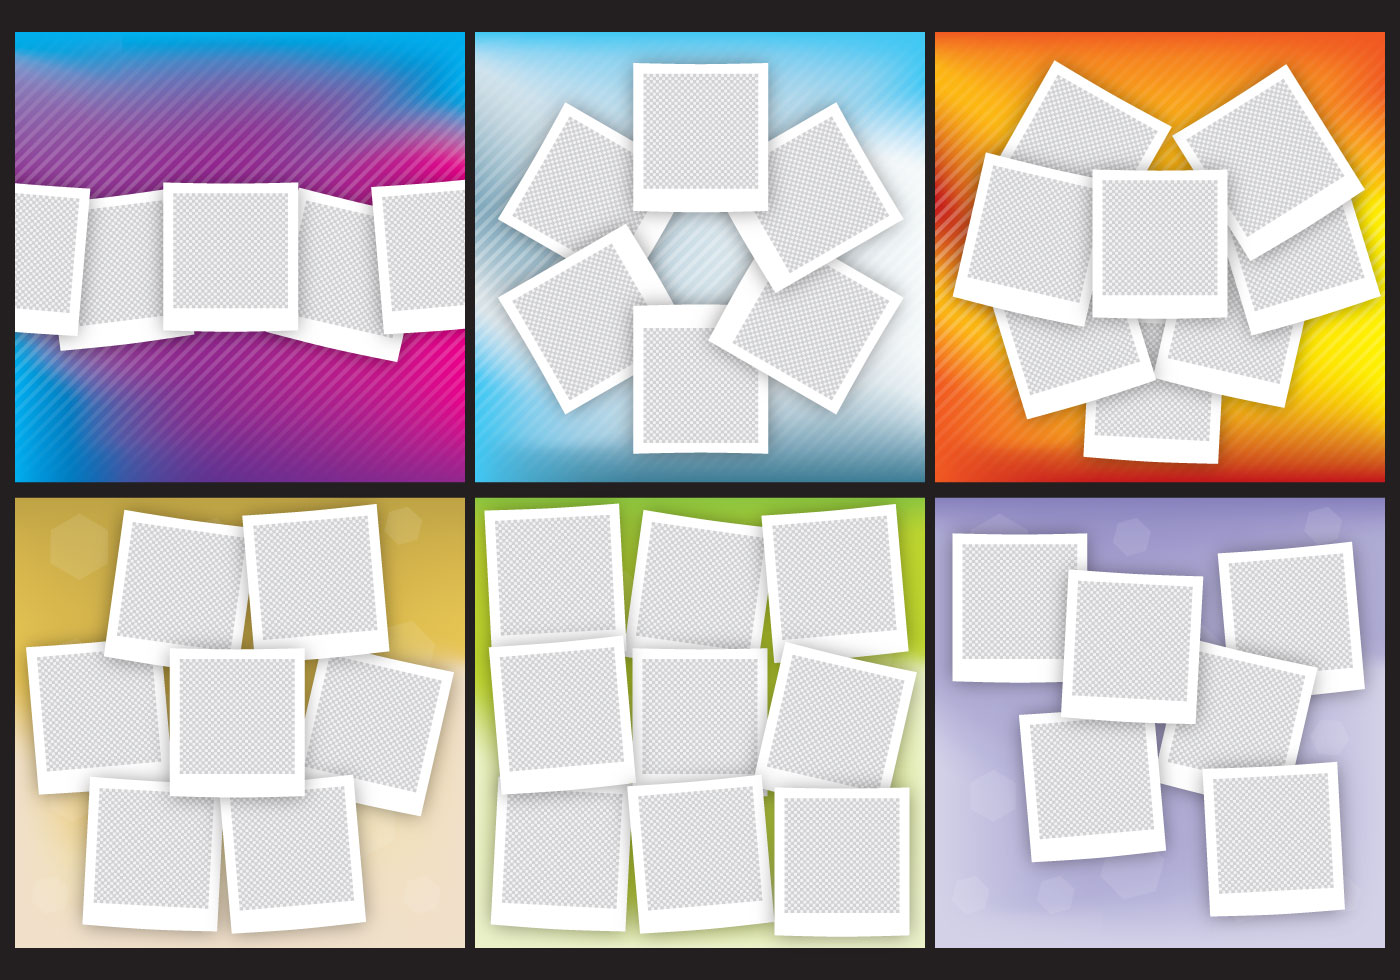 Polaroid Collages - Download Free Vector Art, Stock Graphics & Images